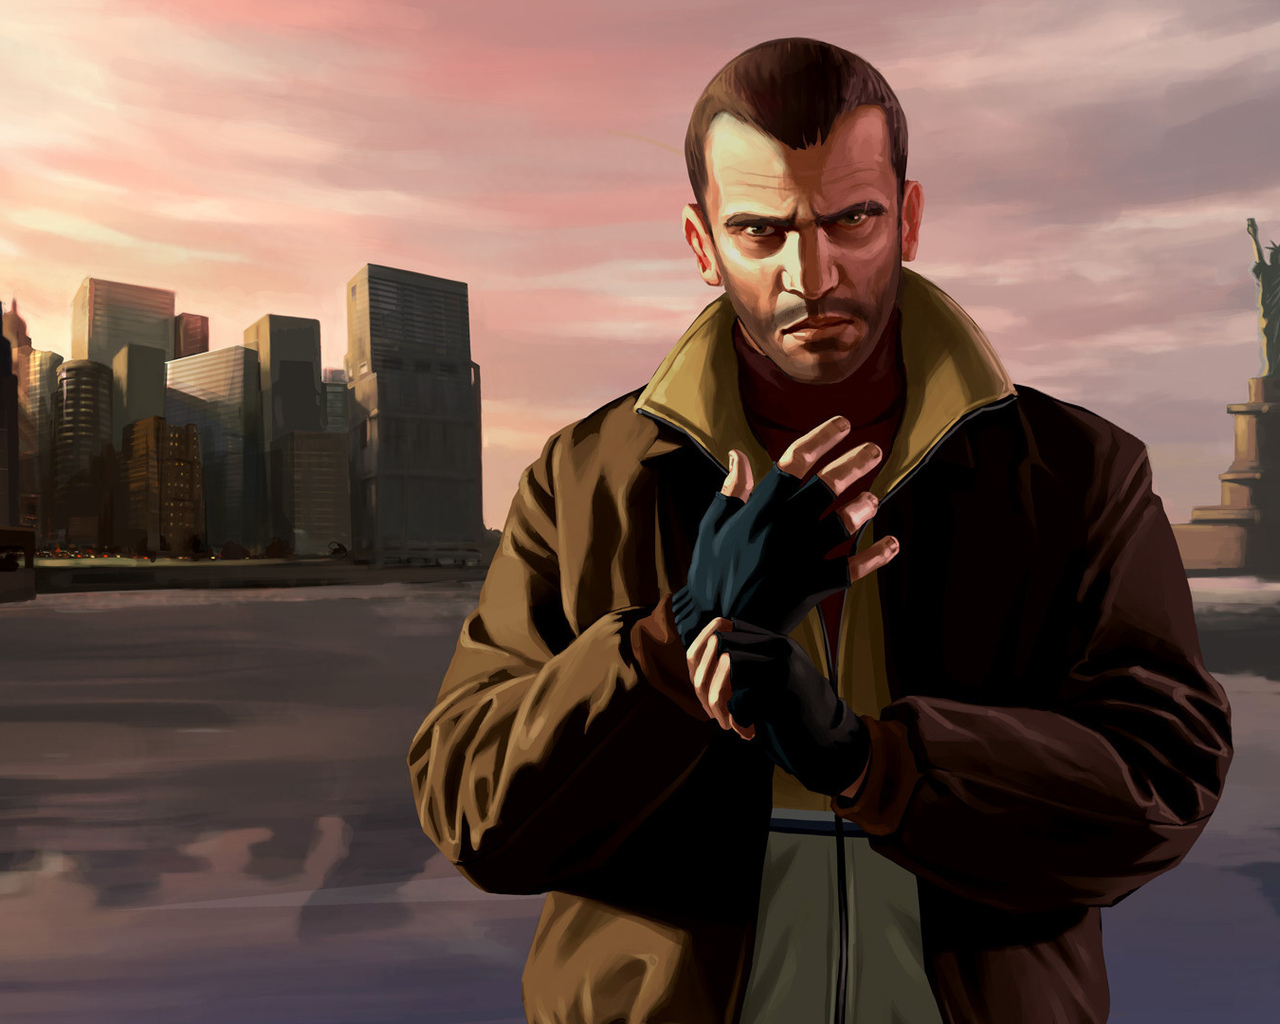 игры, gta 4, gta iv, grand theft auto, grand theft auto 4, нико, беллик, niko, bellic